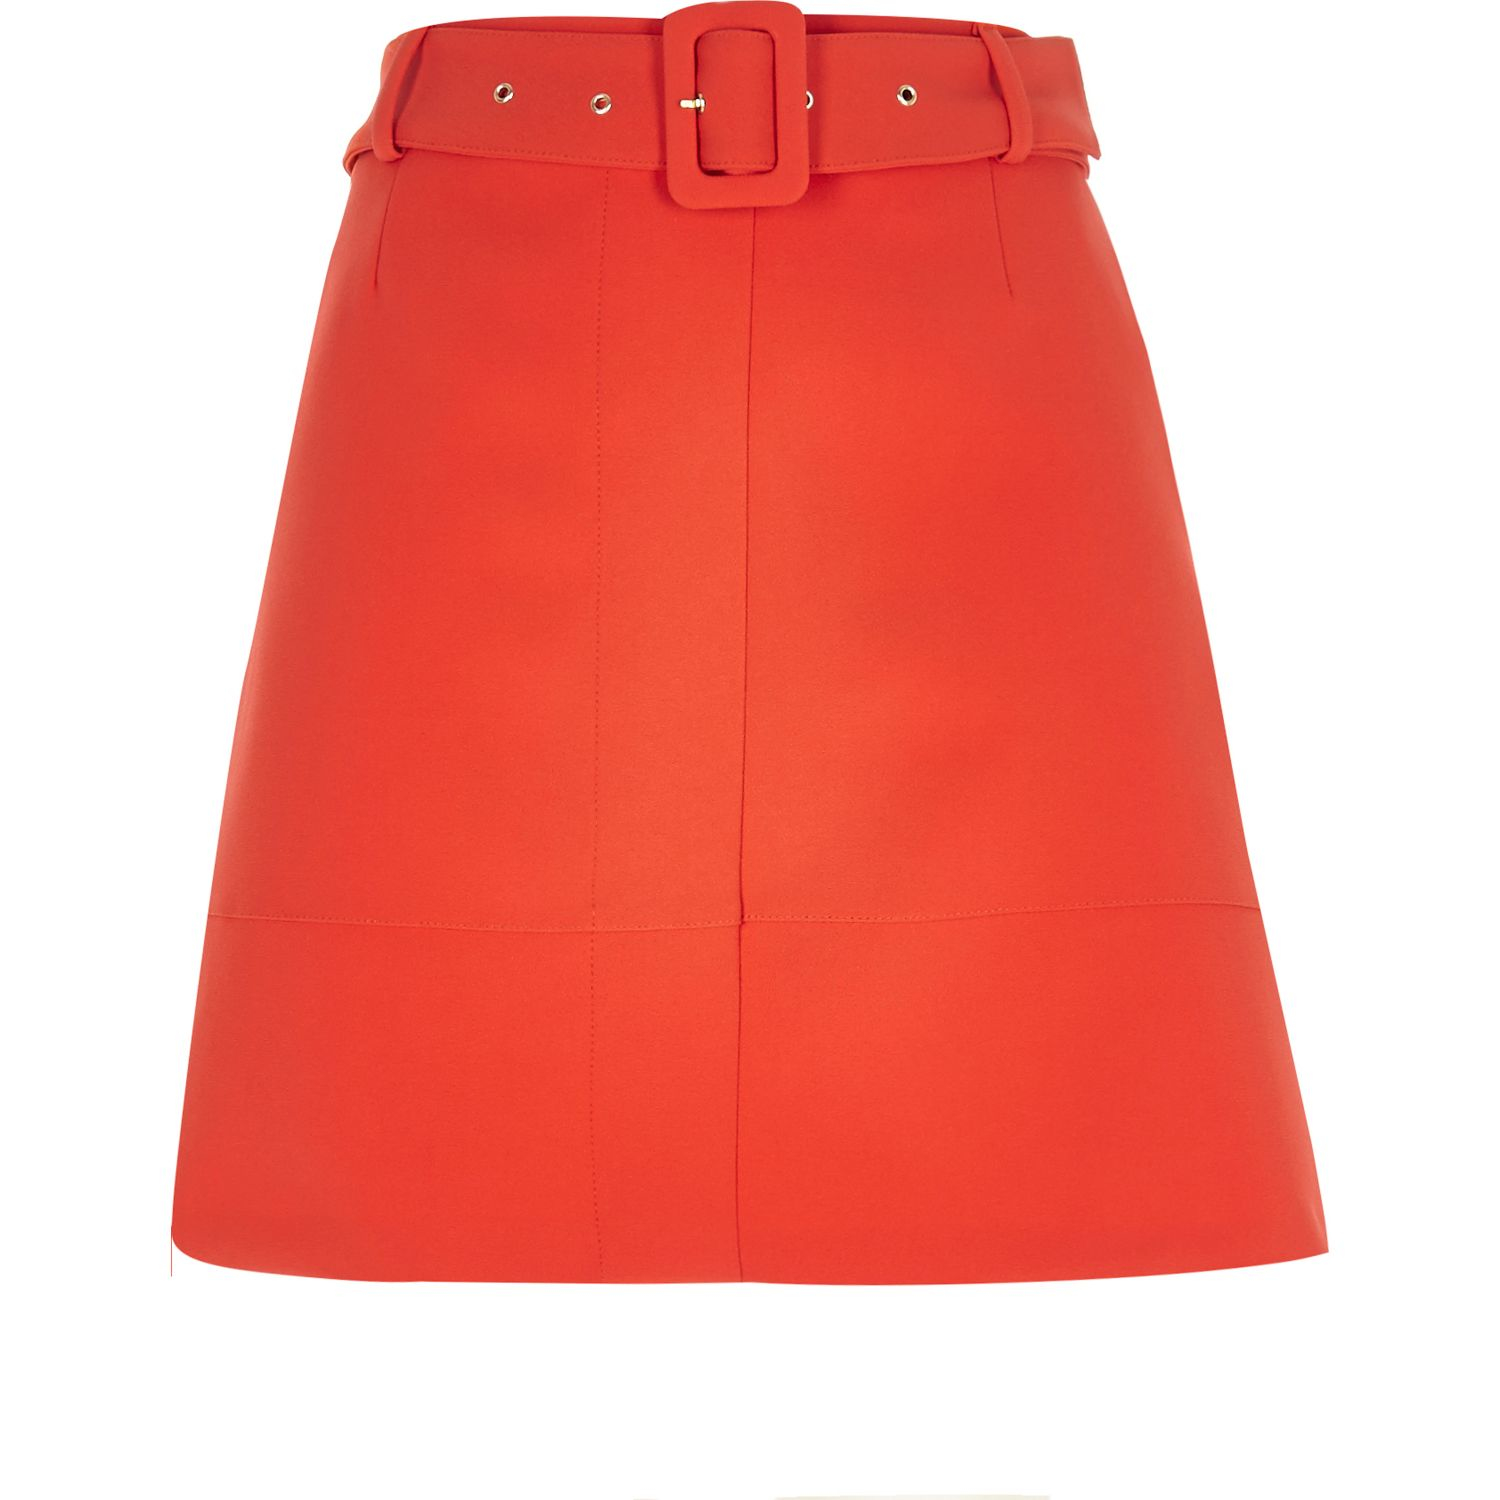 River island Red A-line Skirt in Red | Lyst